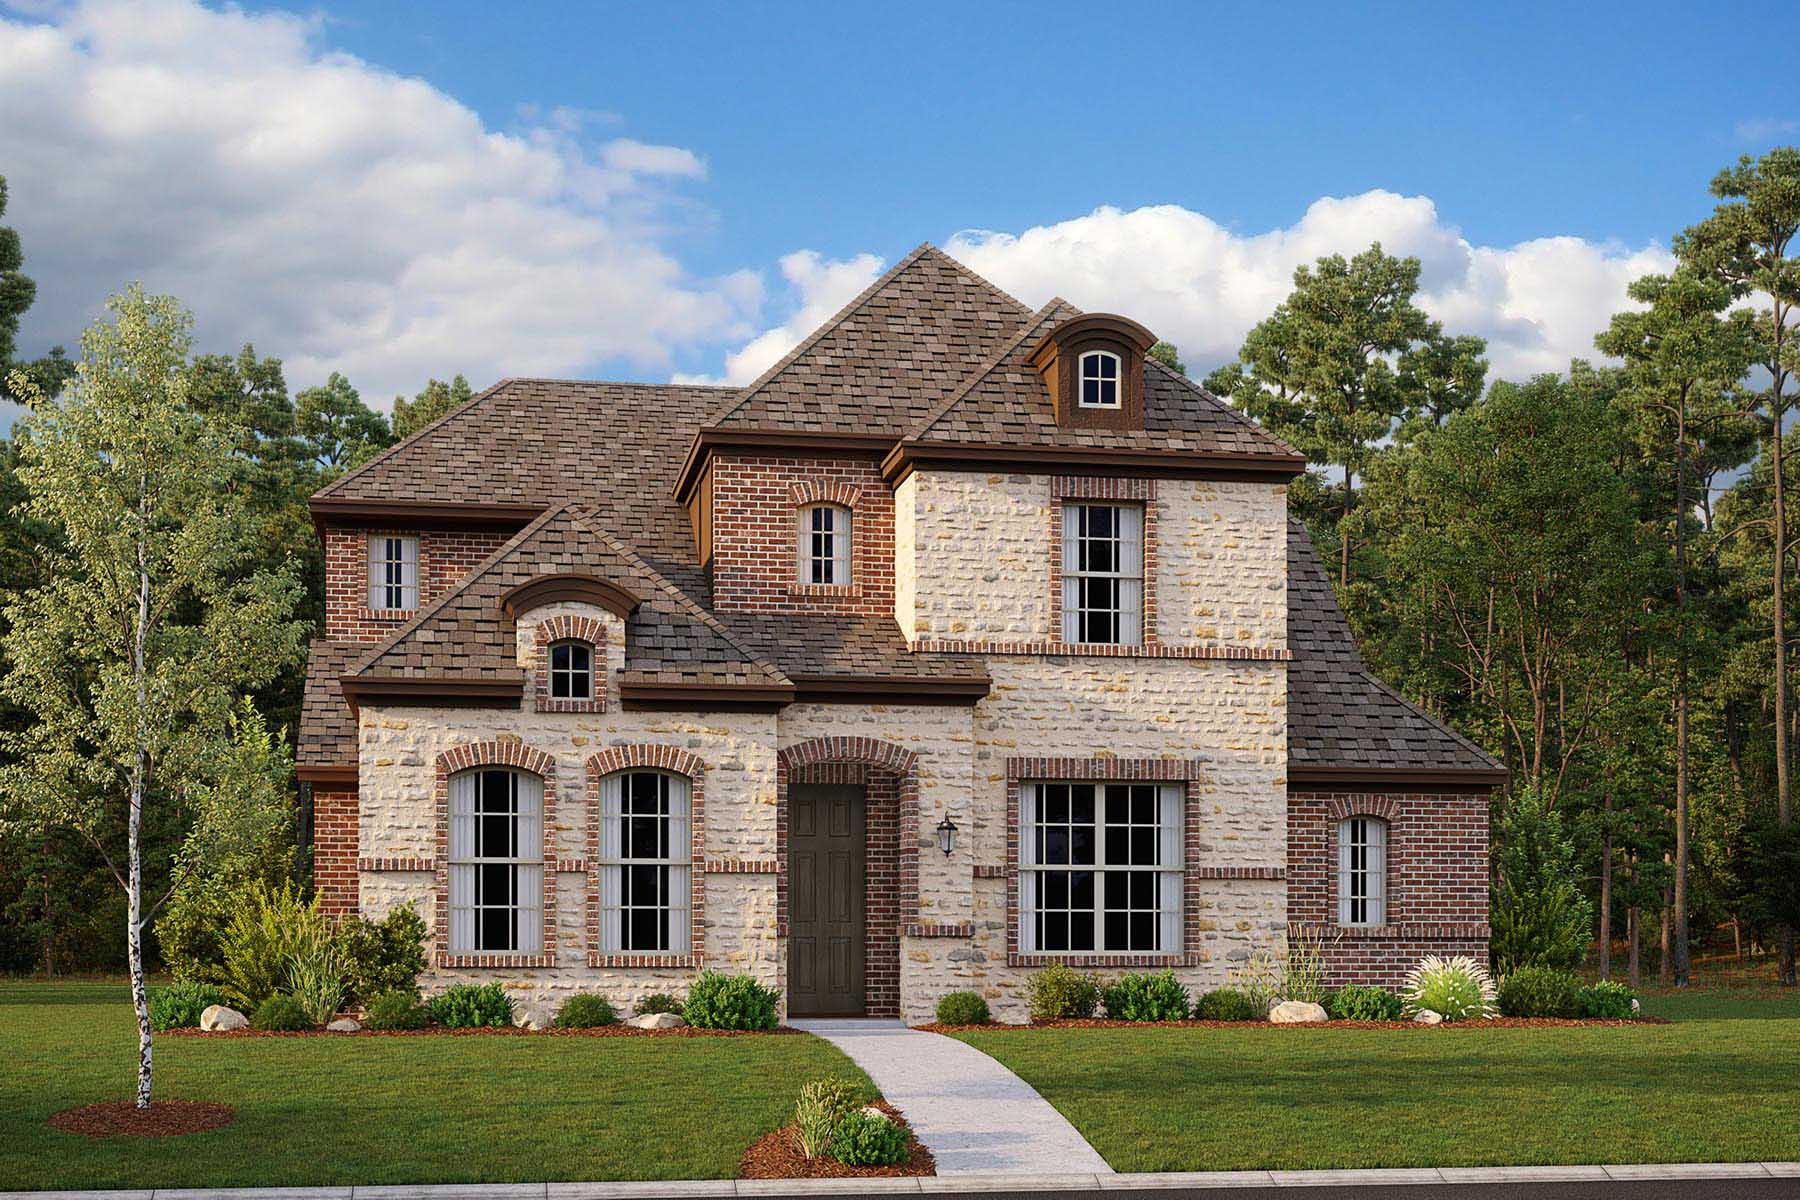 Hendley II Plan DAL_HendleyII_A_ElevationExt_1800x1200 at Villages of Creekwood in Frisco Texas by Mattamy Homes